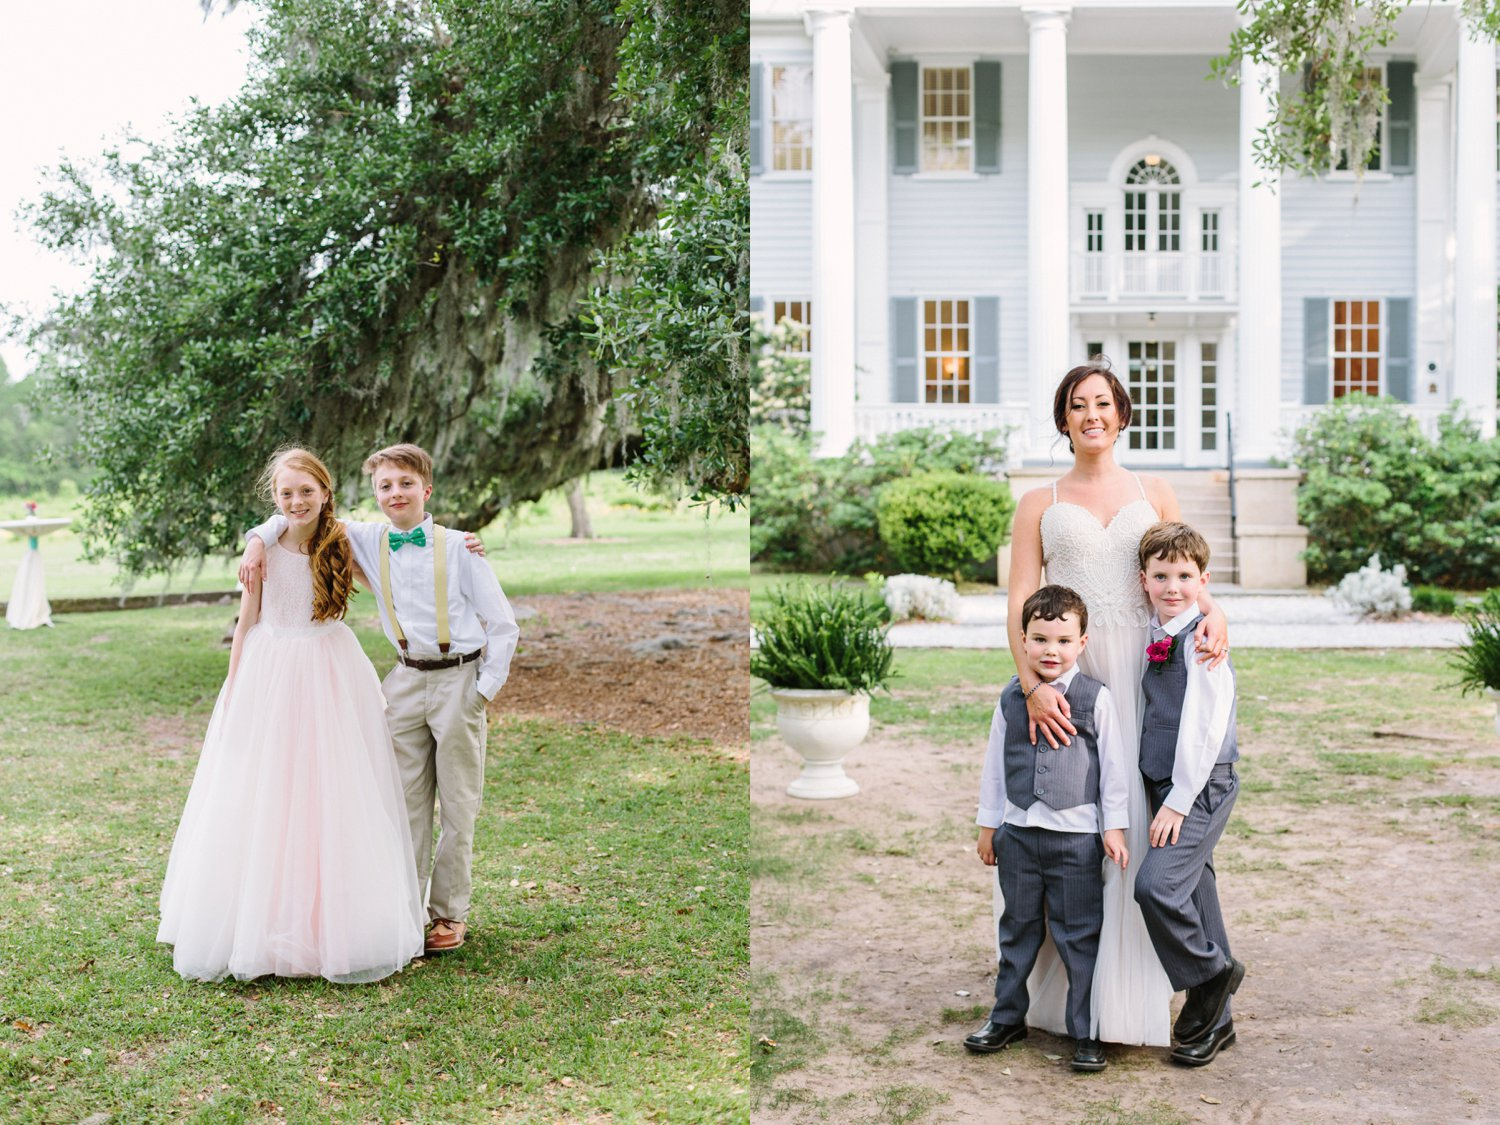 Lindsey_A_Miller_Photography_mcleod_plantation_wedding_charleston_south_carolina_clear_tent_spring_mod_events_054.jpg